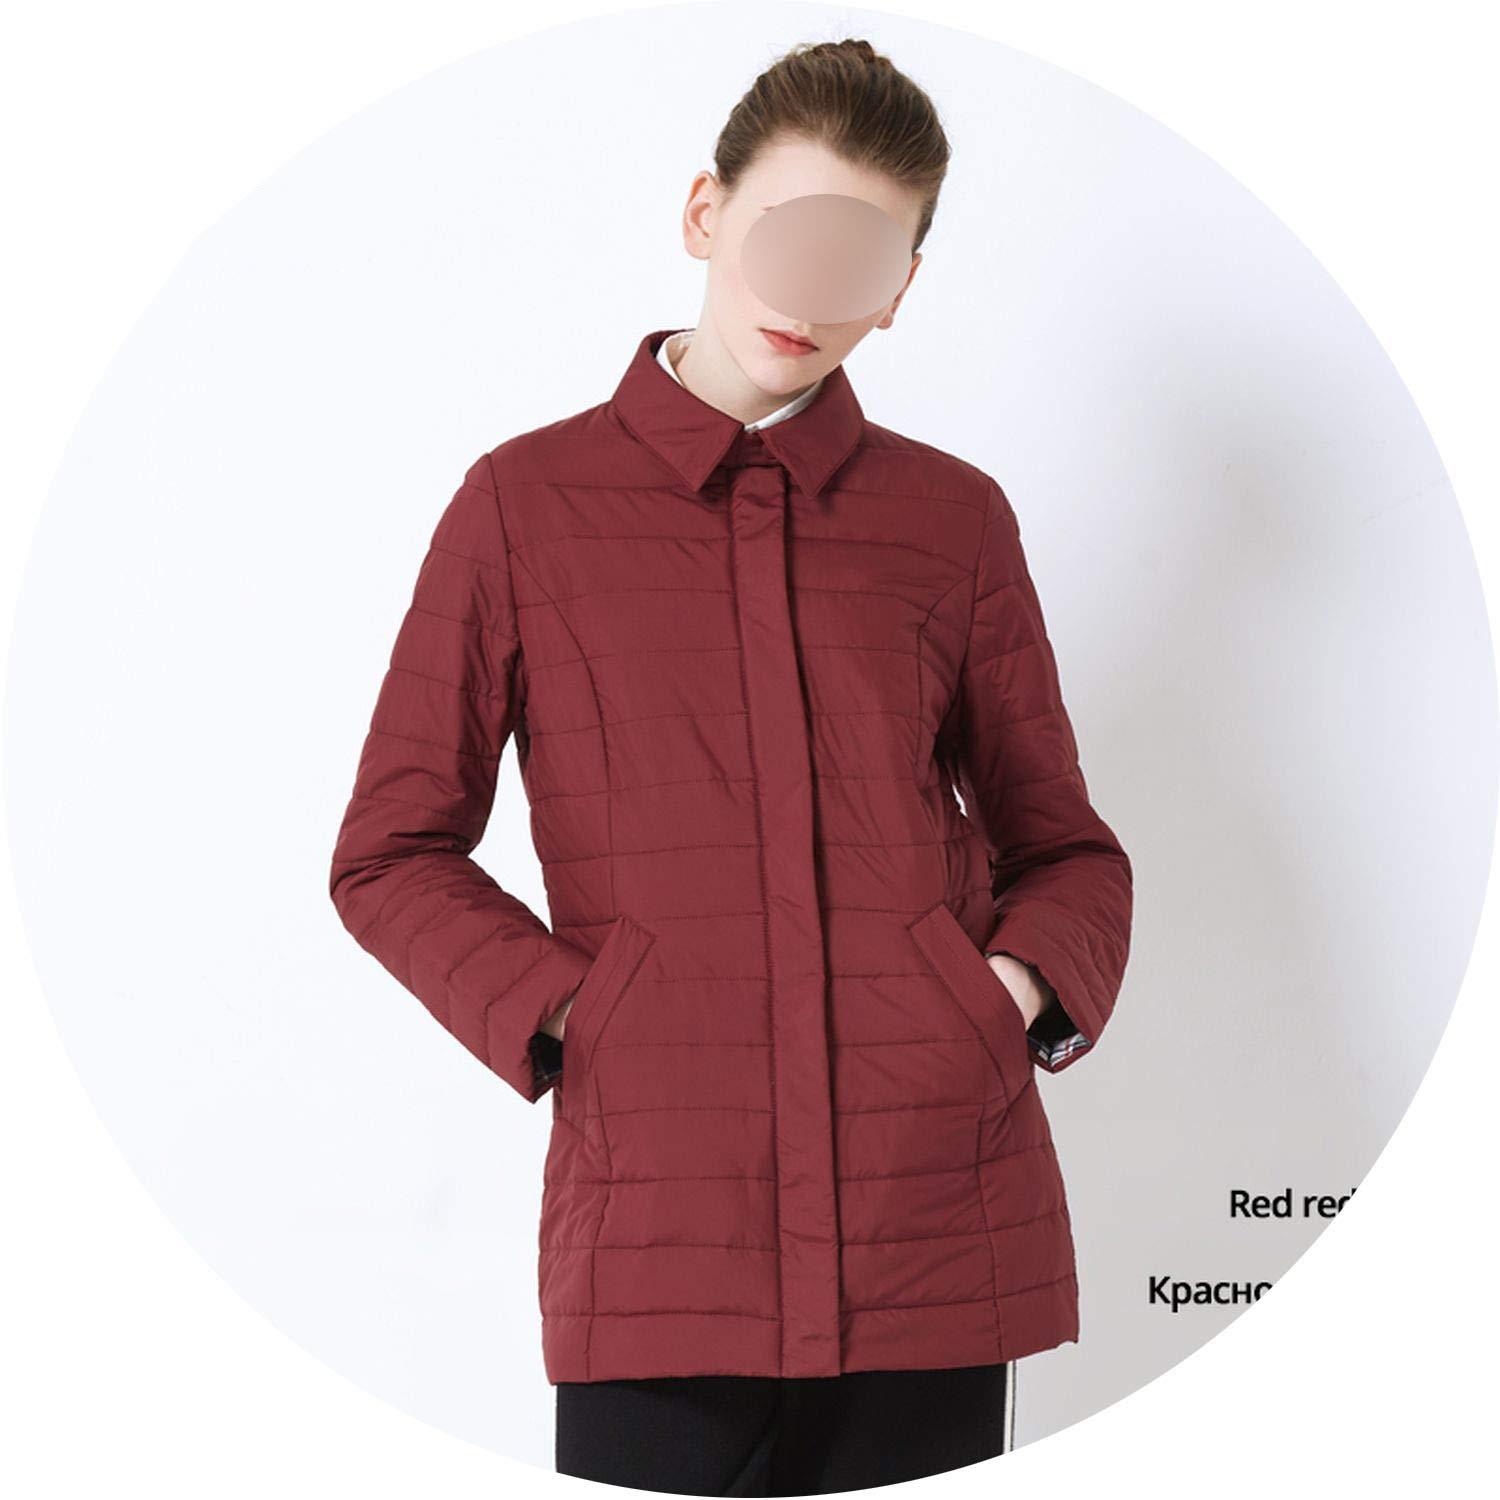 G339 Red red Be fearless 2019 Spring Ladies Short Coat Fashion Casual Ladies Jacket Ladies Cotton Coat